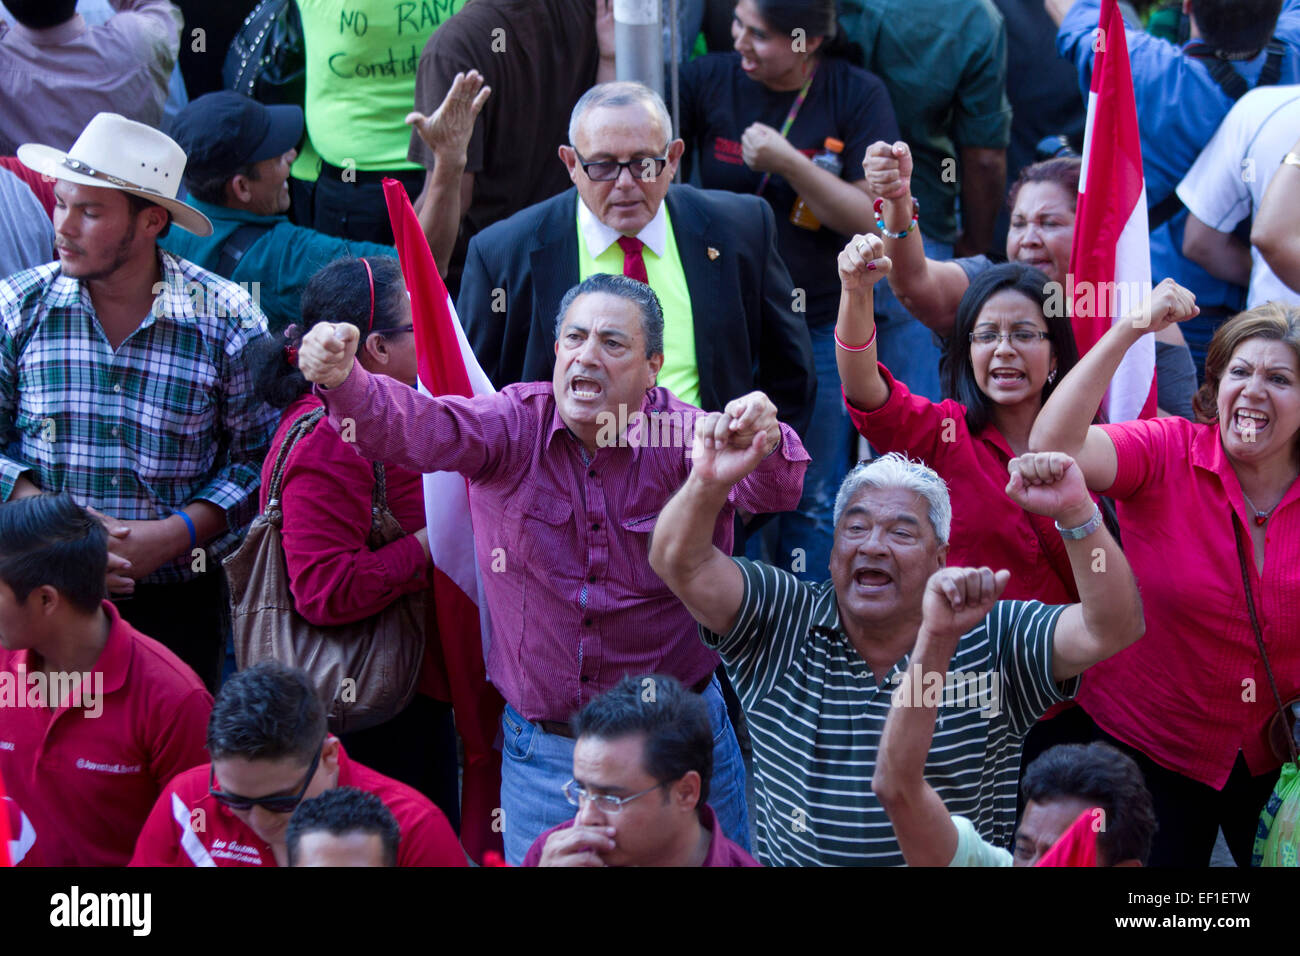 """(150125) -- TEGUCIGALPA, Jan. 25, 2015 (Xinhua) -- Supporters of the political party """"Libertad y Refundacion"""", whose leader is former Honduran President, Jose Manuel Zelaya Rosales, celebrate the constitutional non-ratification of the Military Police of Public Order (PMOP), in front of the National Congress, in Tegucigalpa city, Honduras, on Jan. 24, 2015. The Honduran Congress rejected on Saturday the proposal of the Executive Branch to grant constitutional rank to the PMOP, during the closing of the sessions of the first legislature. After the rejection of the lawmakers, President Juan Orlan Stock Photo"""